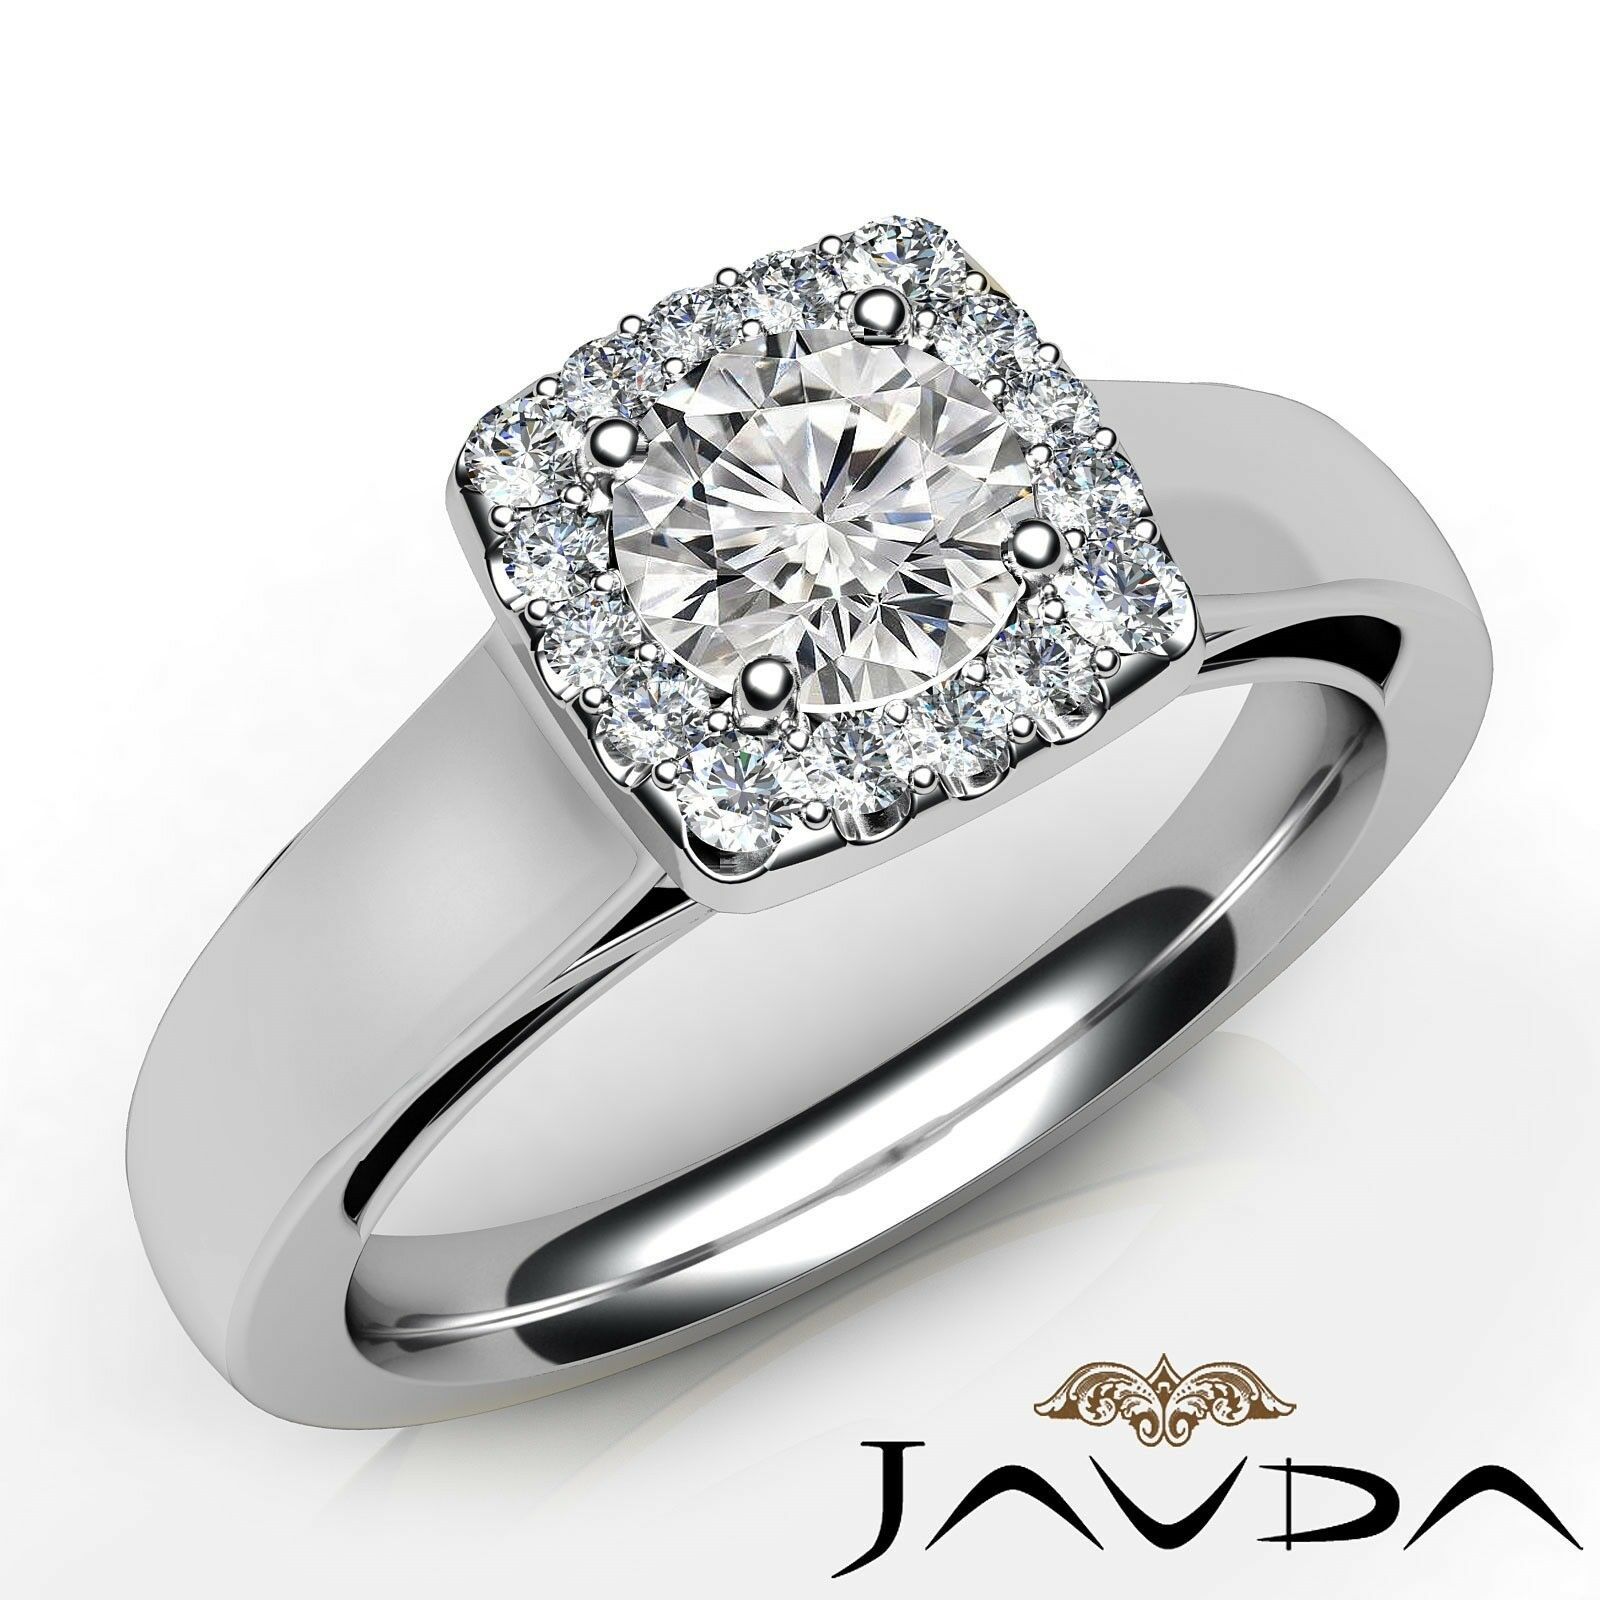 0.81ctw Filigree Lace Round Diamond Engagement Ring GIA F-VVS2 White Gold Rings